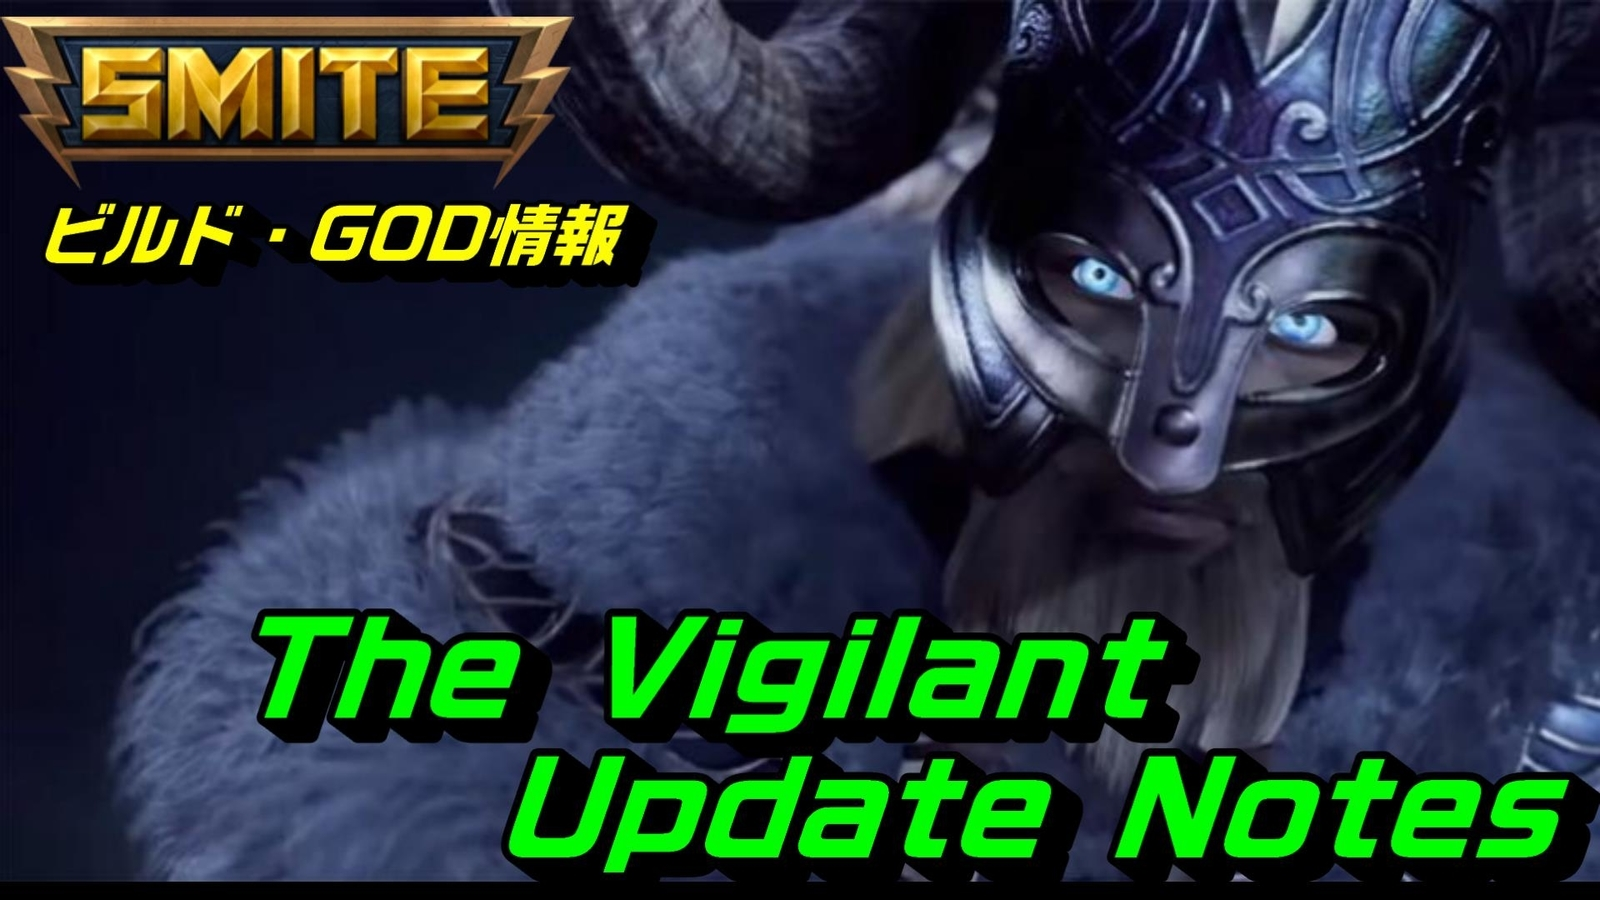 SMITEThe Vigilant Update Notes